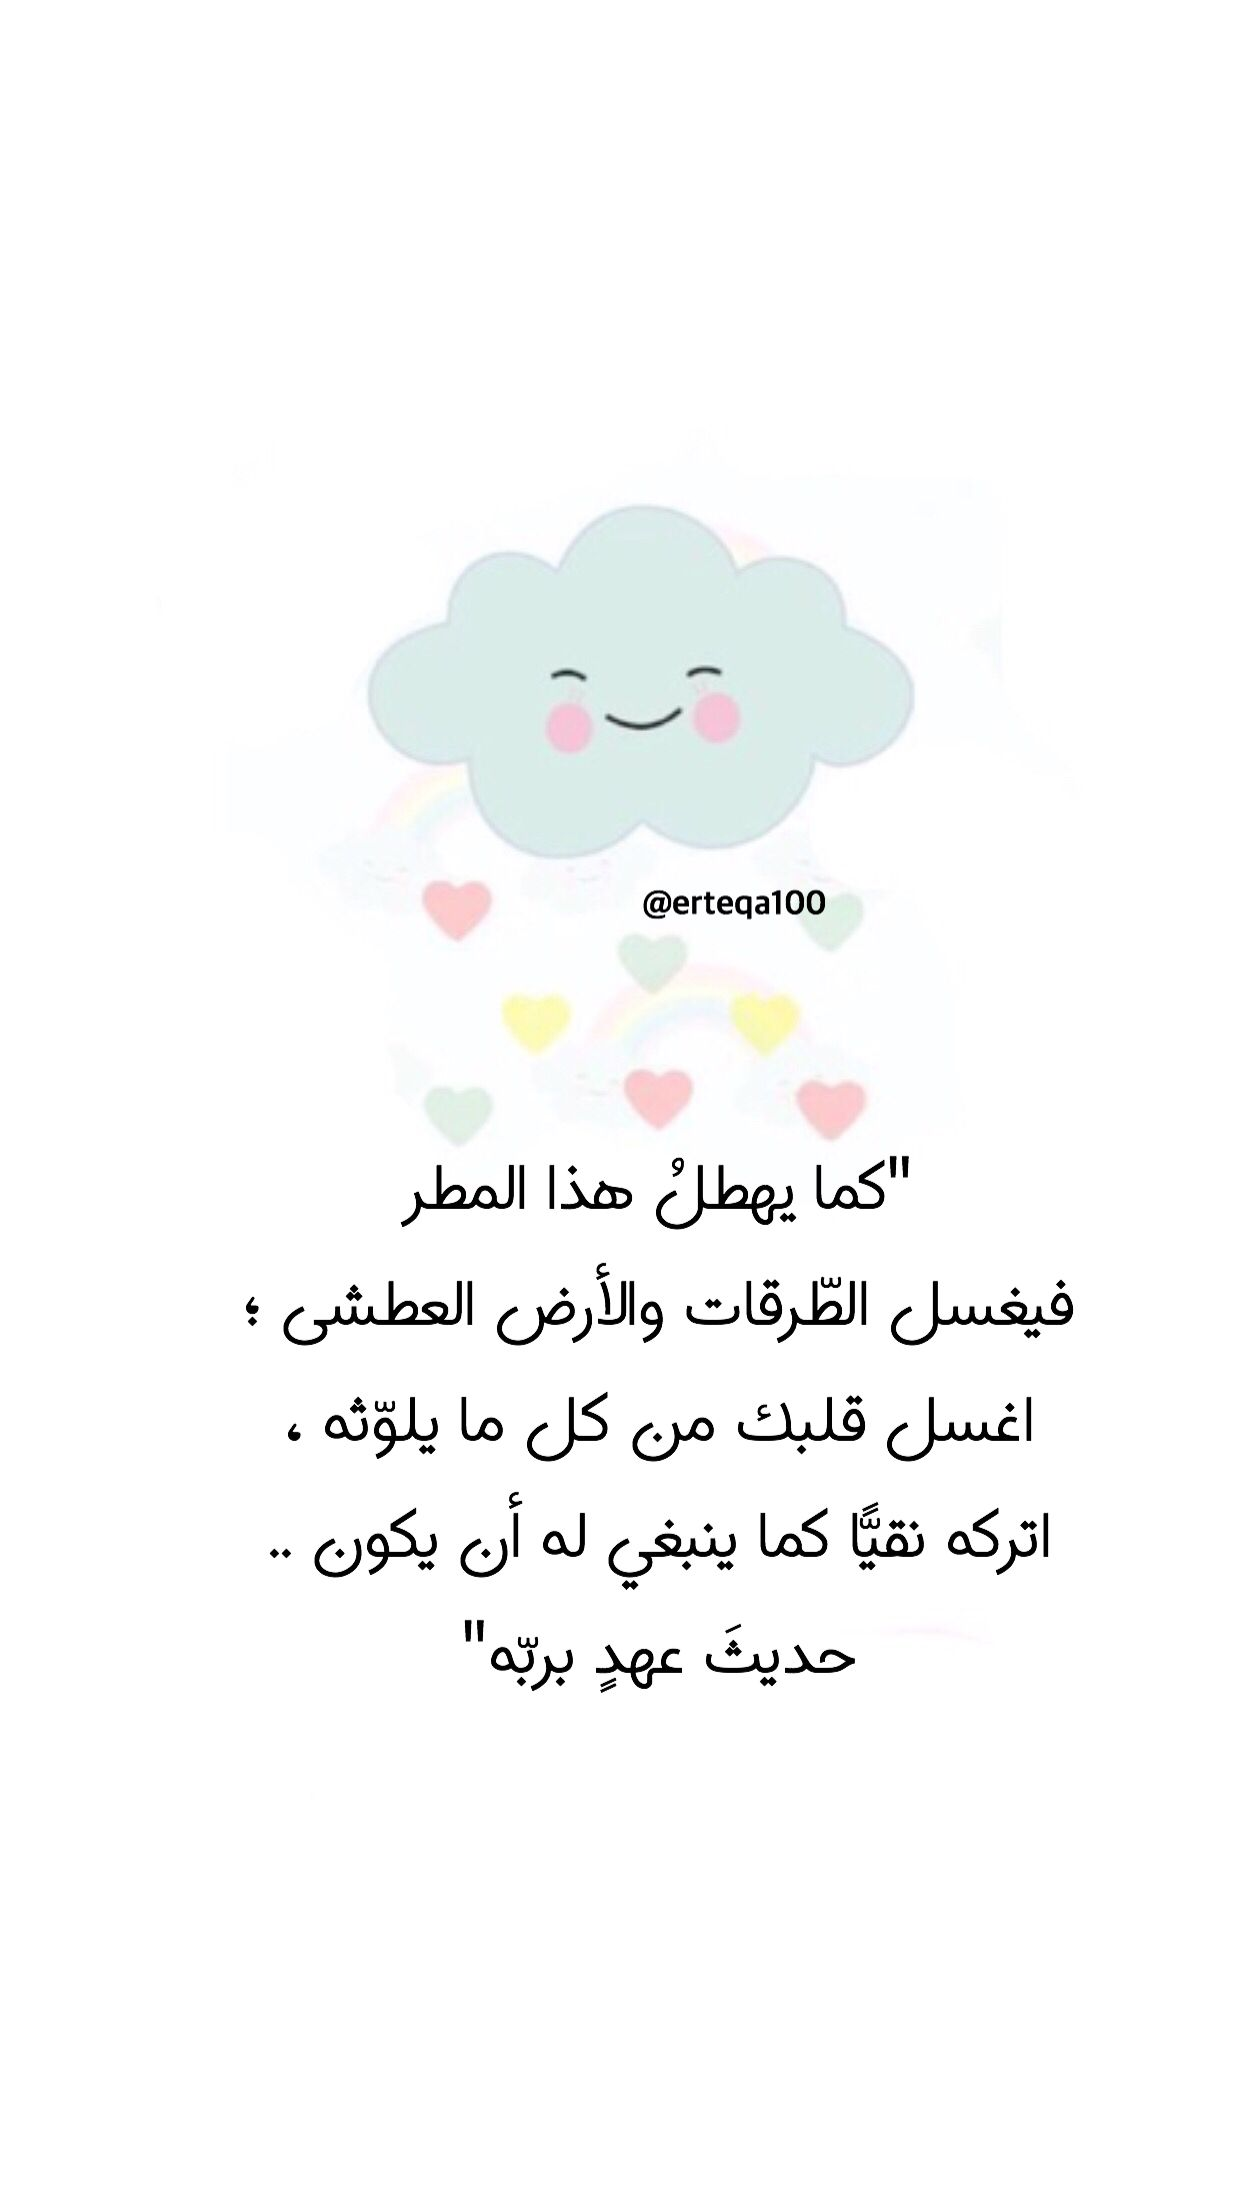 Pin By Khoikh On To Me Arabic Words Arabic Quotes Quotes